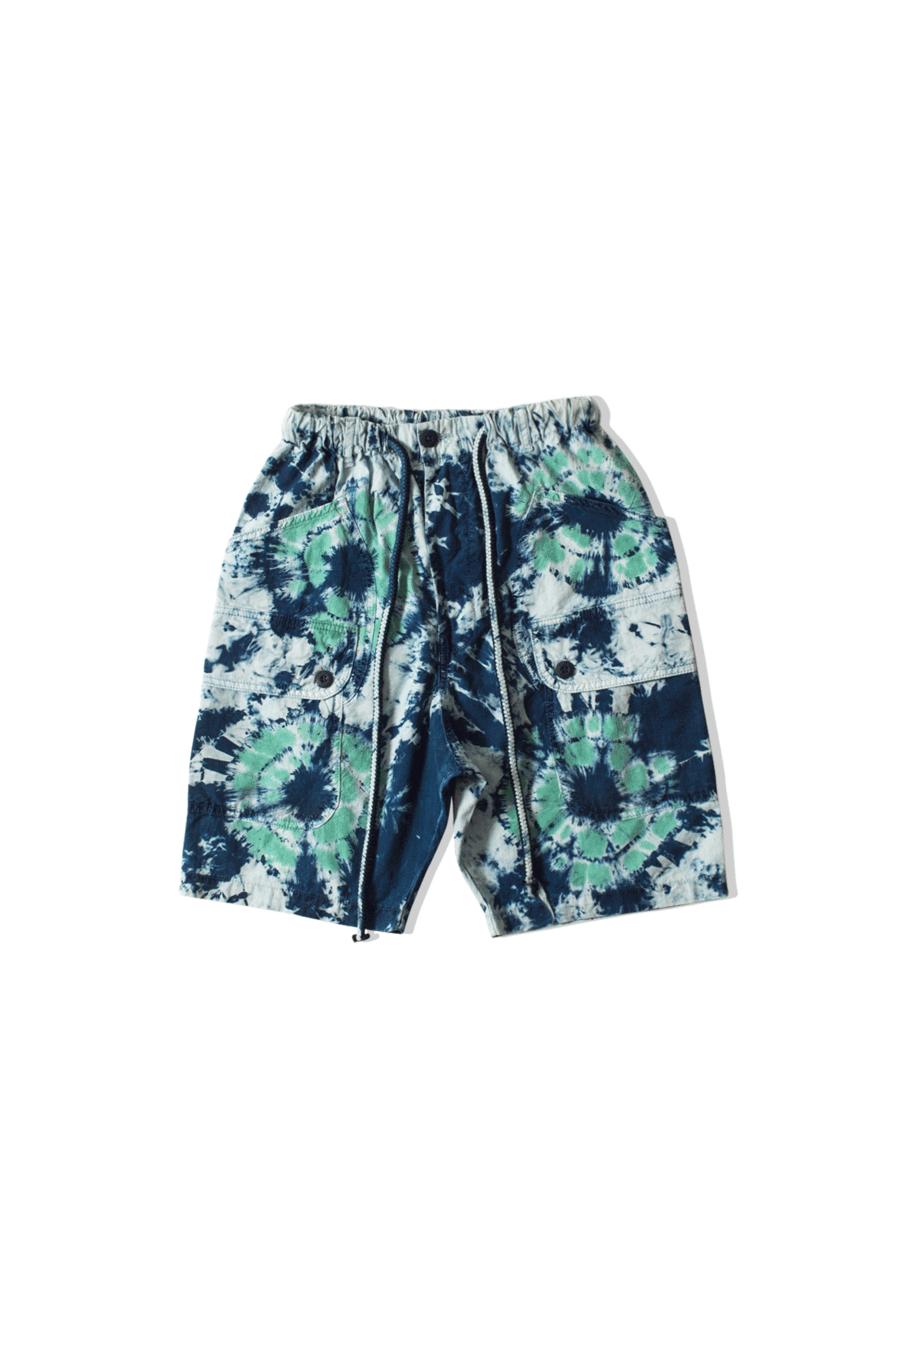 Dr. Collectors Pantaloni corti Short Shibori Blu P30SHORTS#HIBORI#BLUE#M - One Block Down